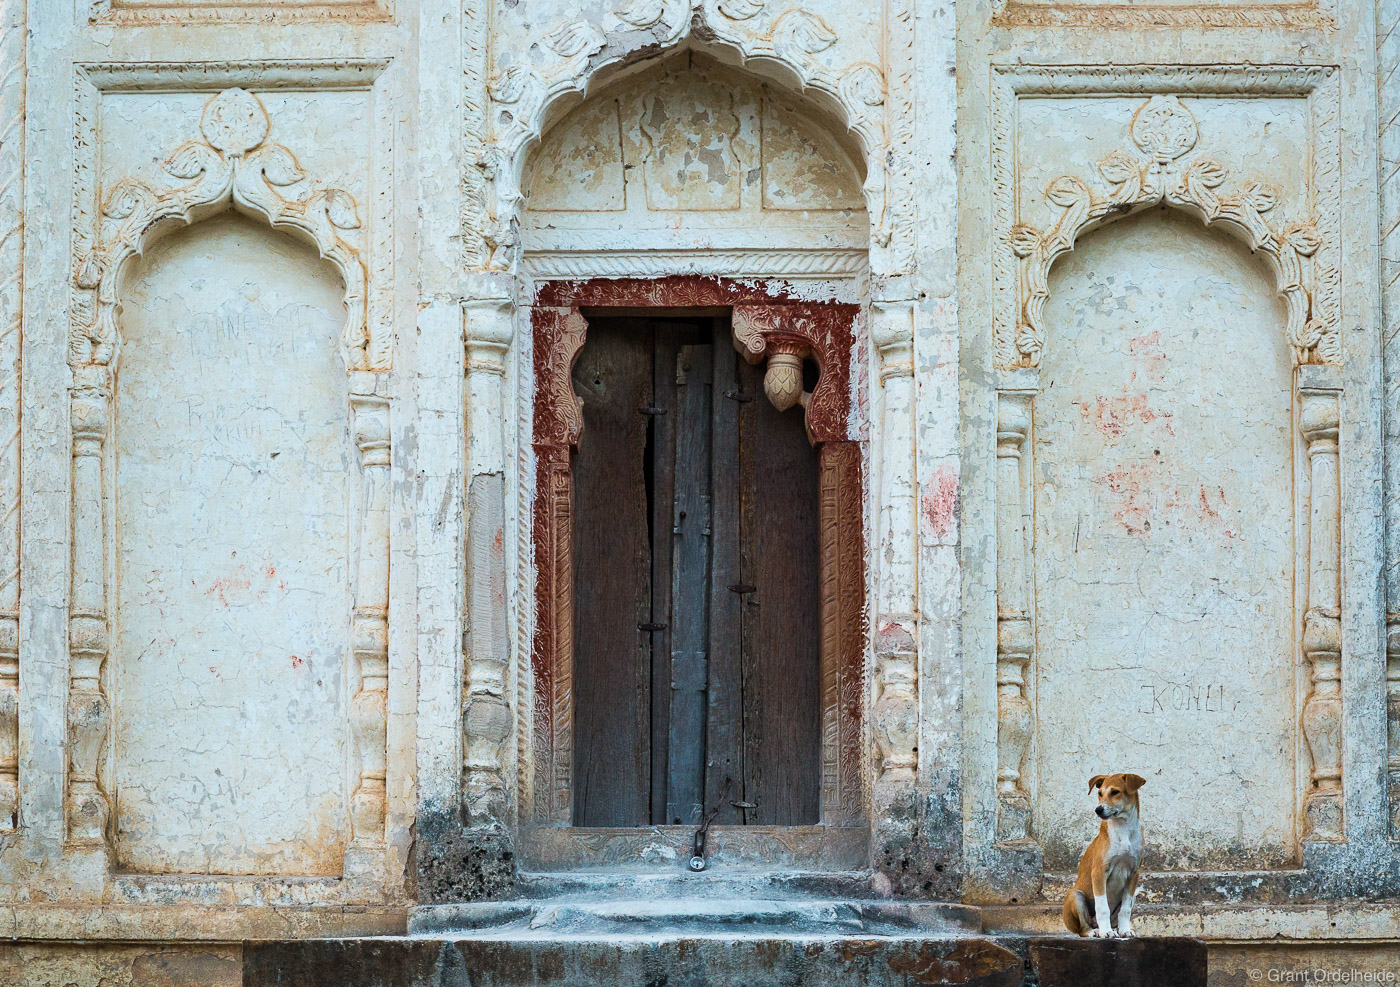 A stray dog stands guard at the entrance of one of the Lakshmana Temples.